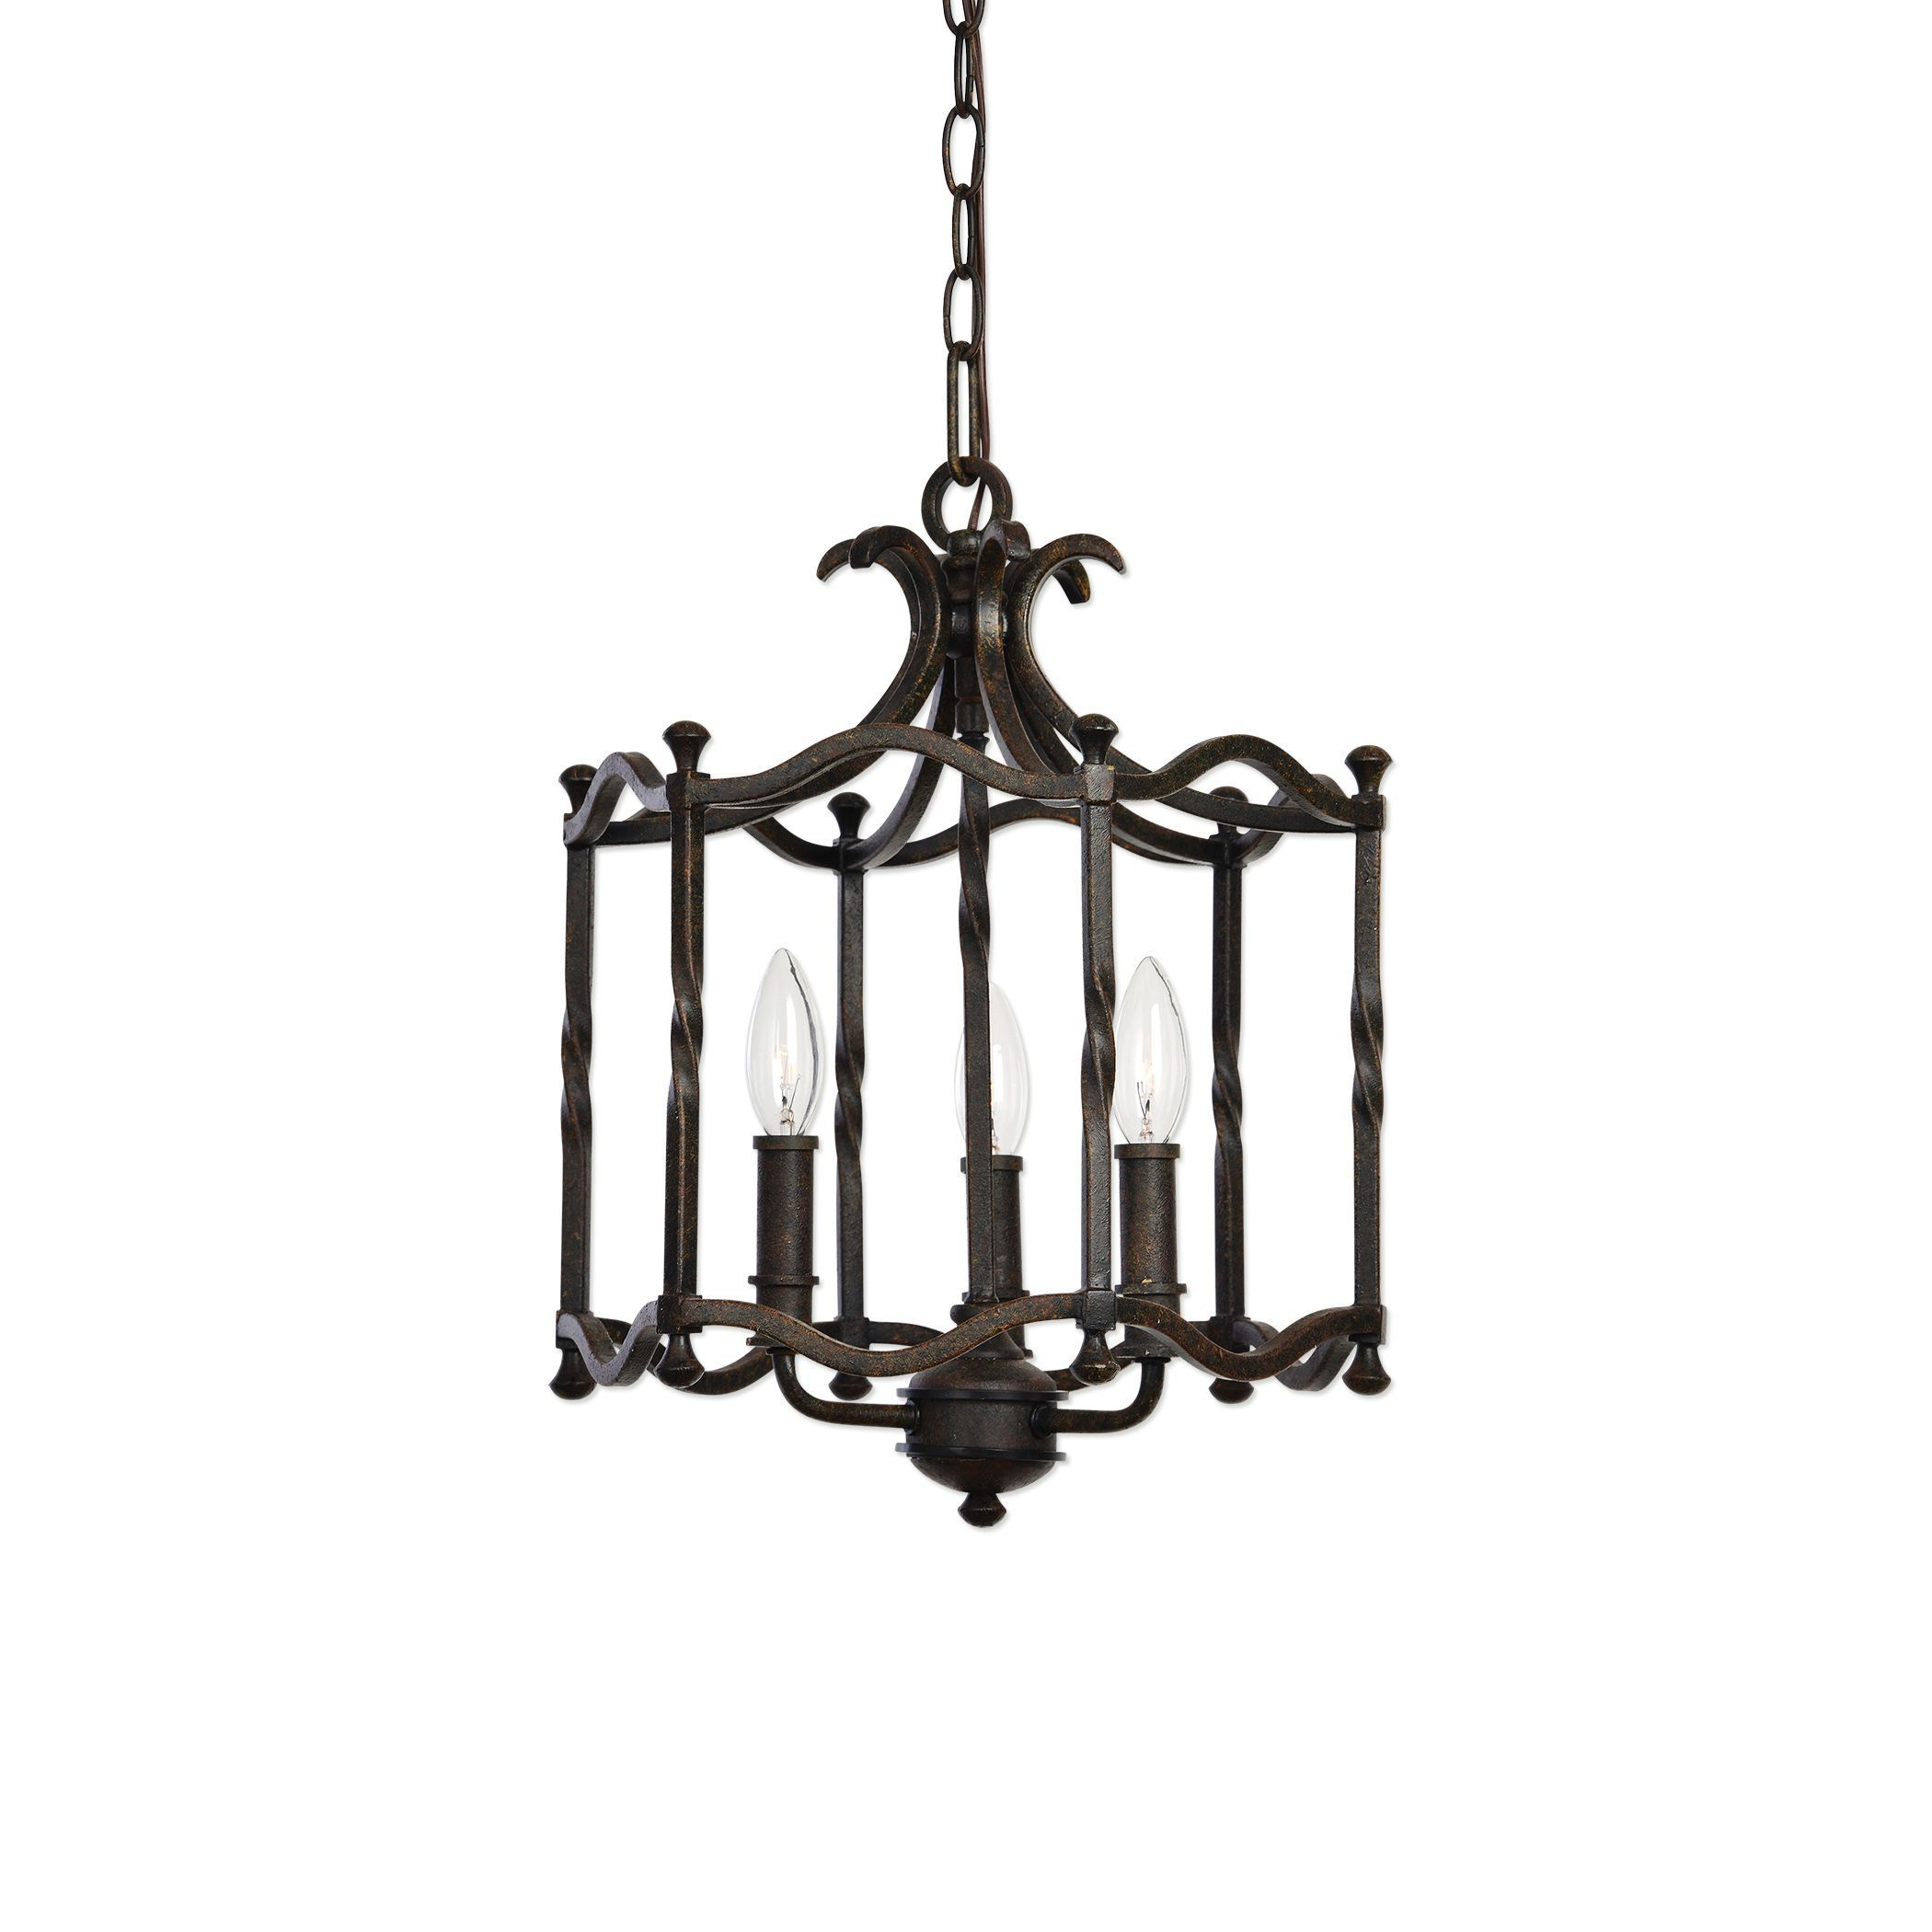 Candela old world 3 light pendant lighting fixture by uttermost candela old world 3 light pendant lighting fixture by uttermost mozeypictures Image collections